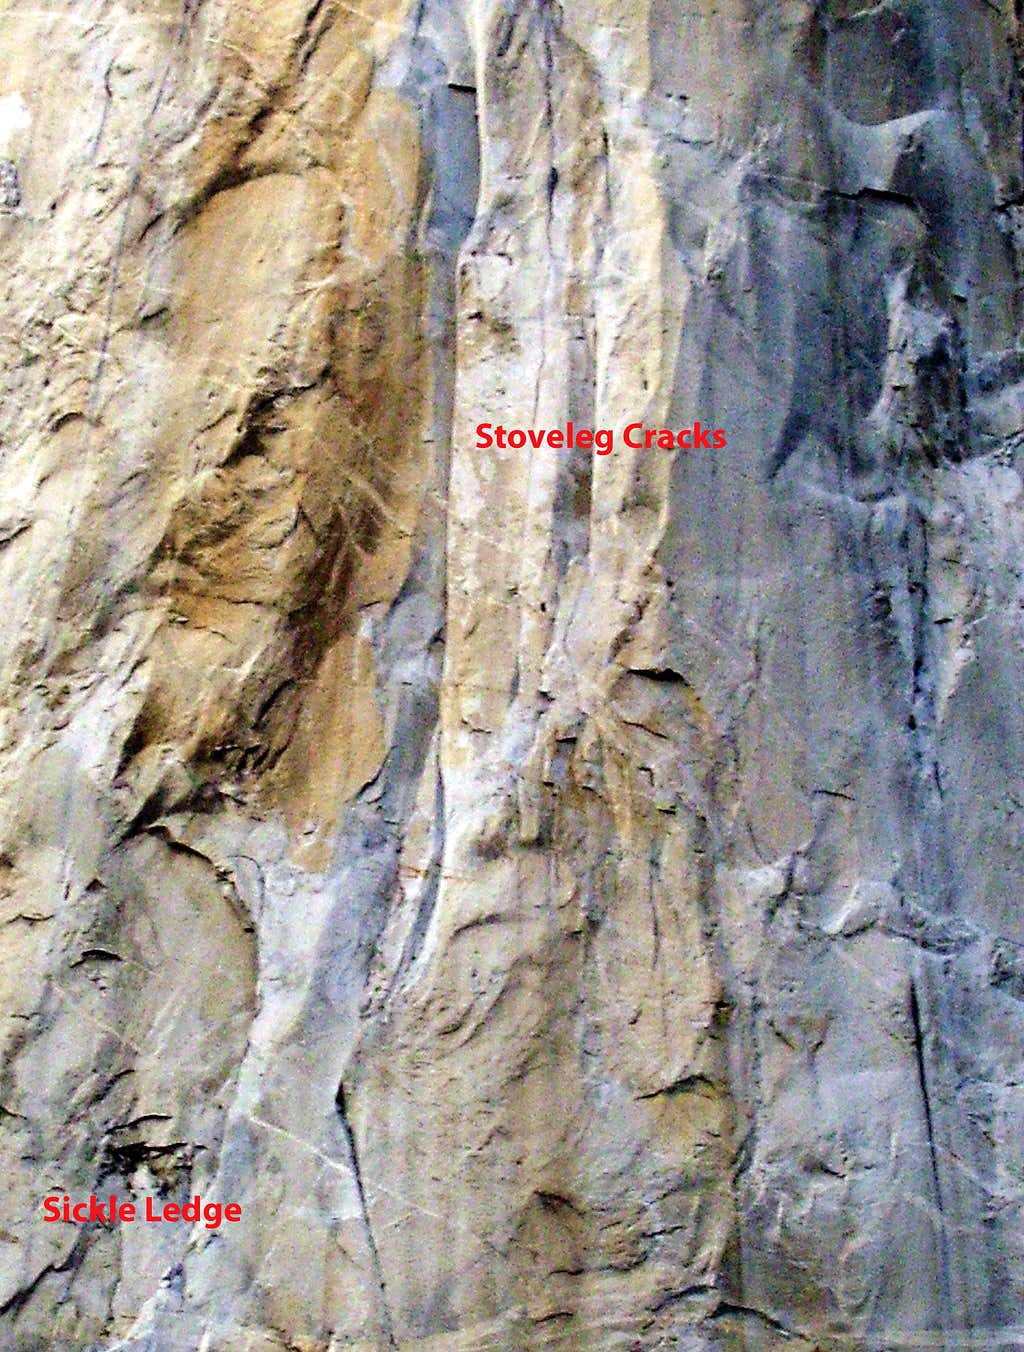 A portion of the Nose route on El Cap